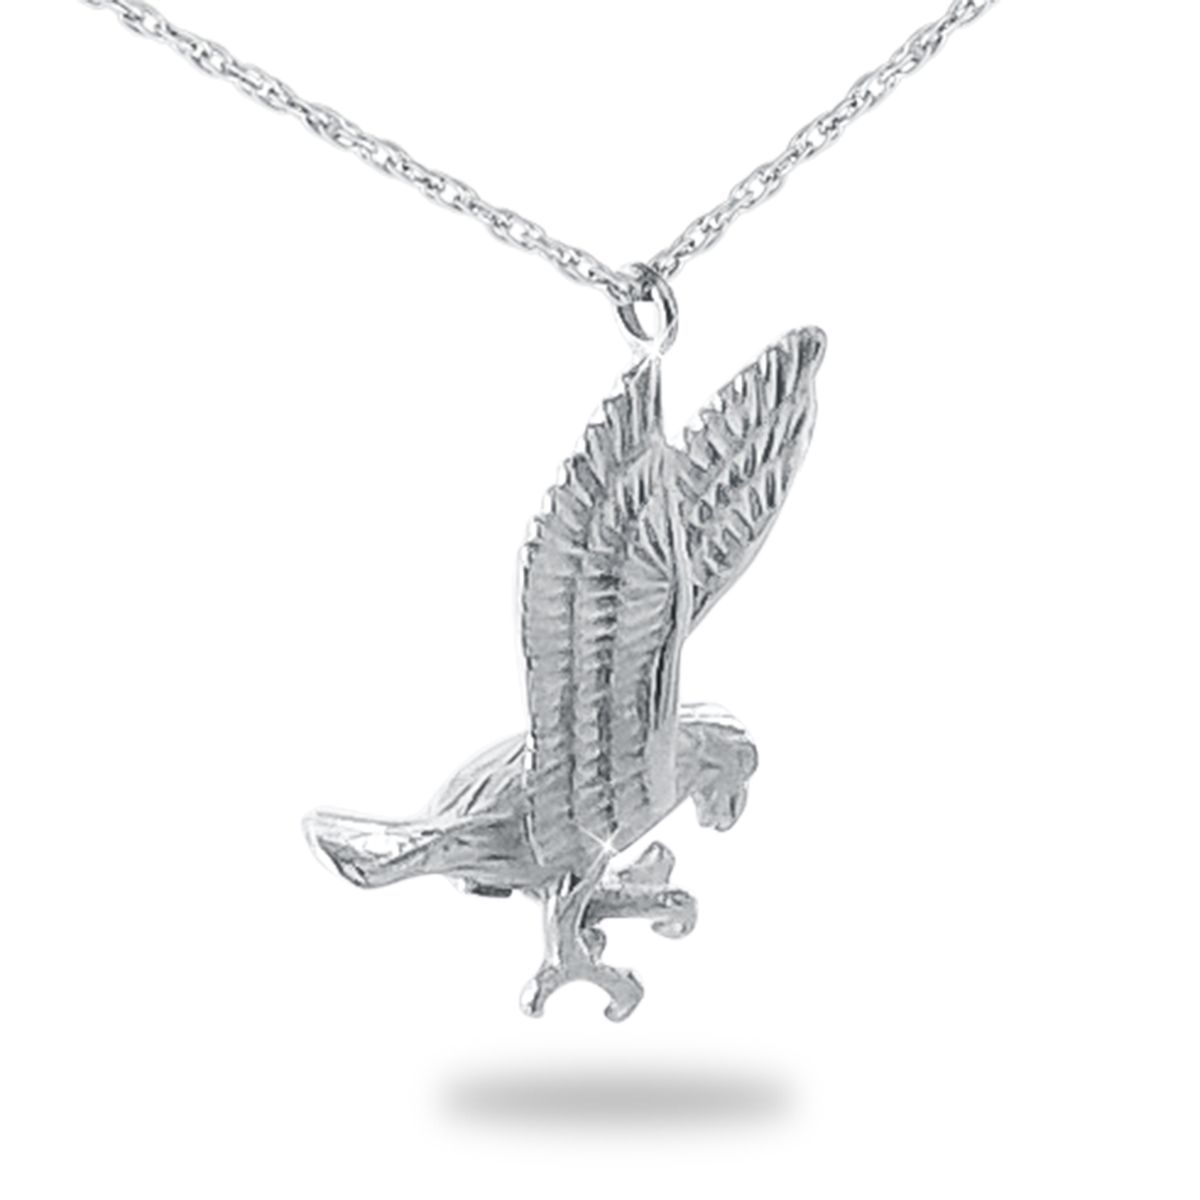 Small/Keepsake Silver Eagle Pendant Funeral Cremation Urn for Ashes image 2